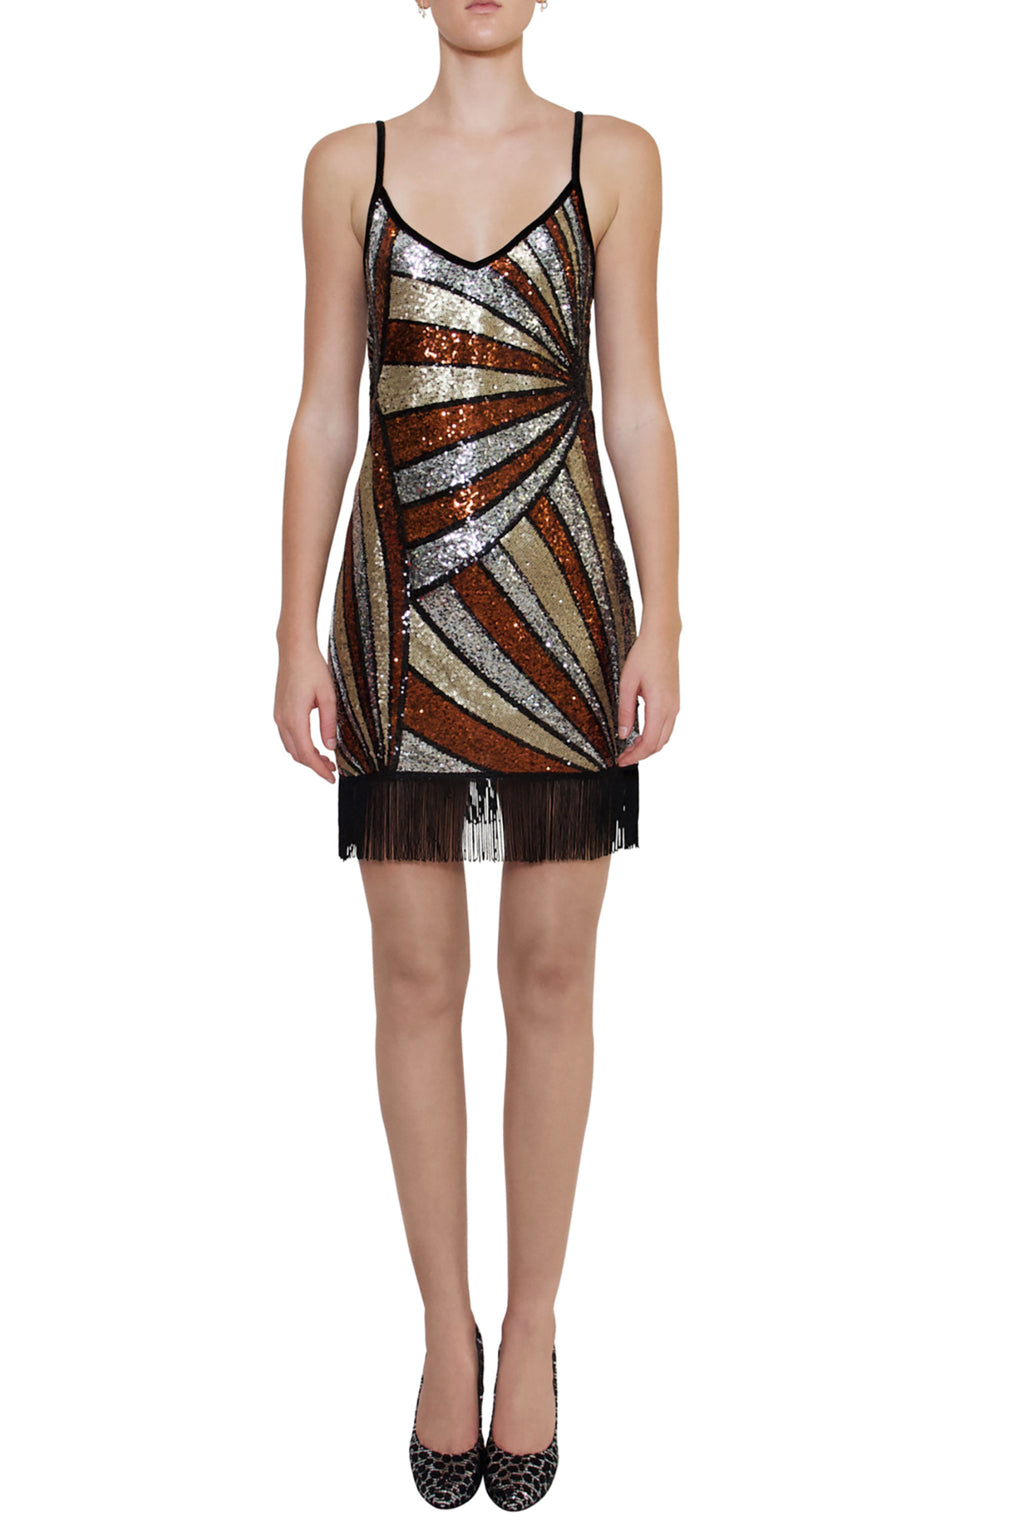 Ilona Rich Bronze Geometric Tassel Sequin Dress